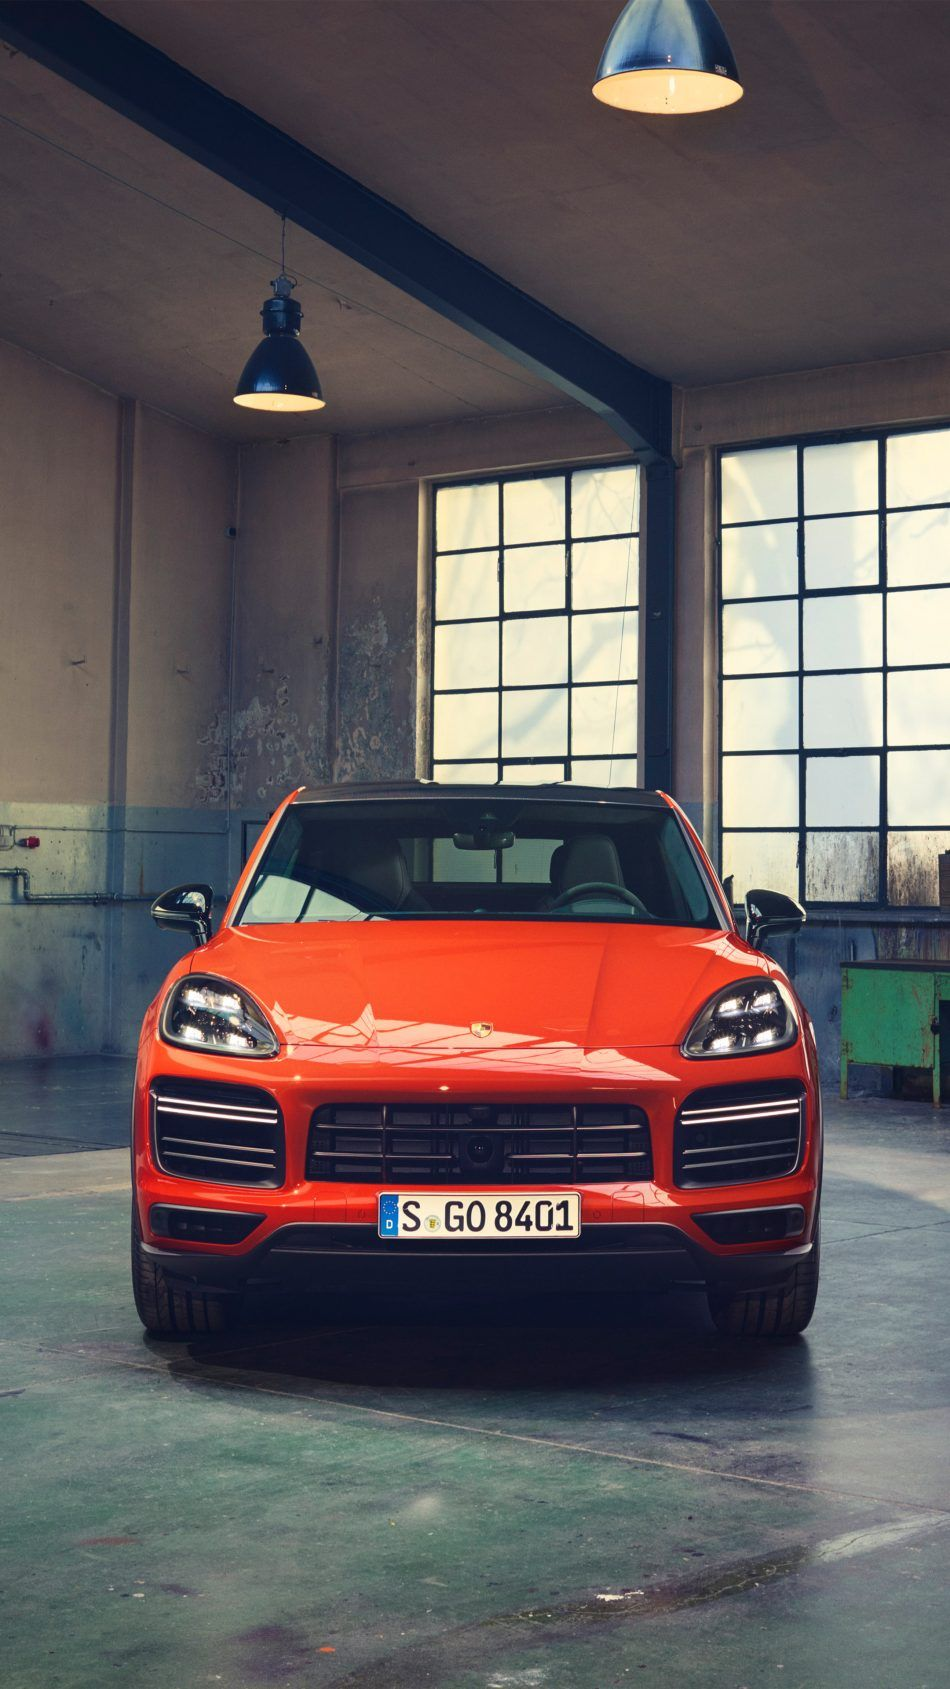 Porsche Cayenne Turbo Coupe 2019 Car Wallpapers Cayenne turbo 950x1689